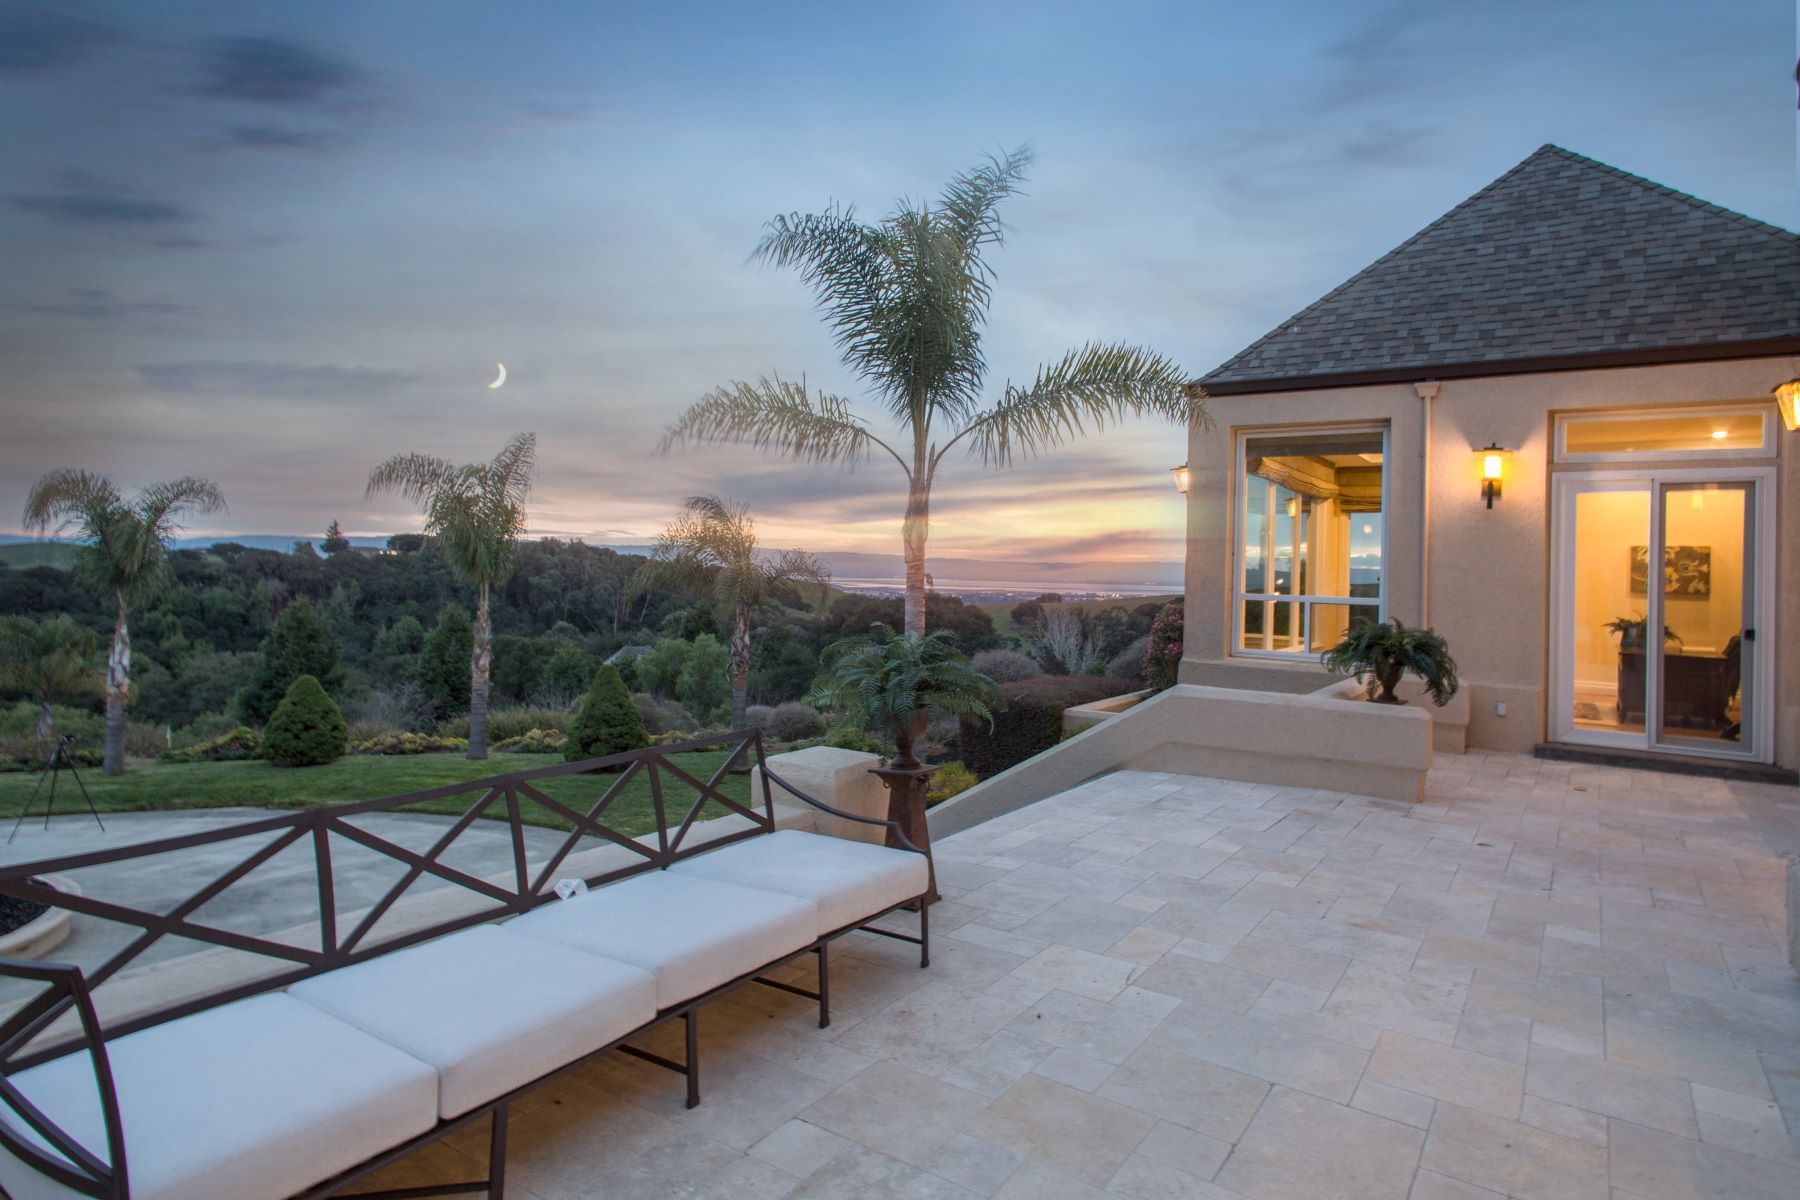 Additional photo for property listing at Stunning Custom Mediterranean with Bay Views on 5 Acres! 41280 Vargas Road Fremont, California 94539 United States